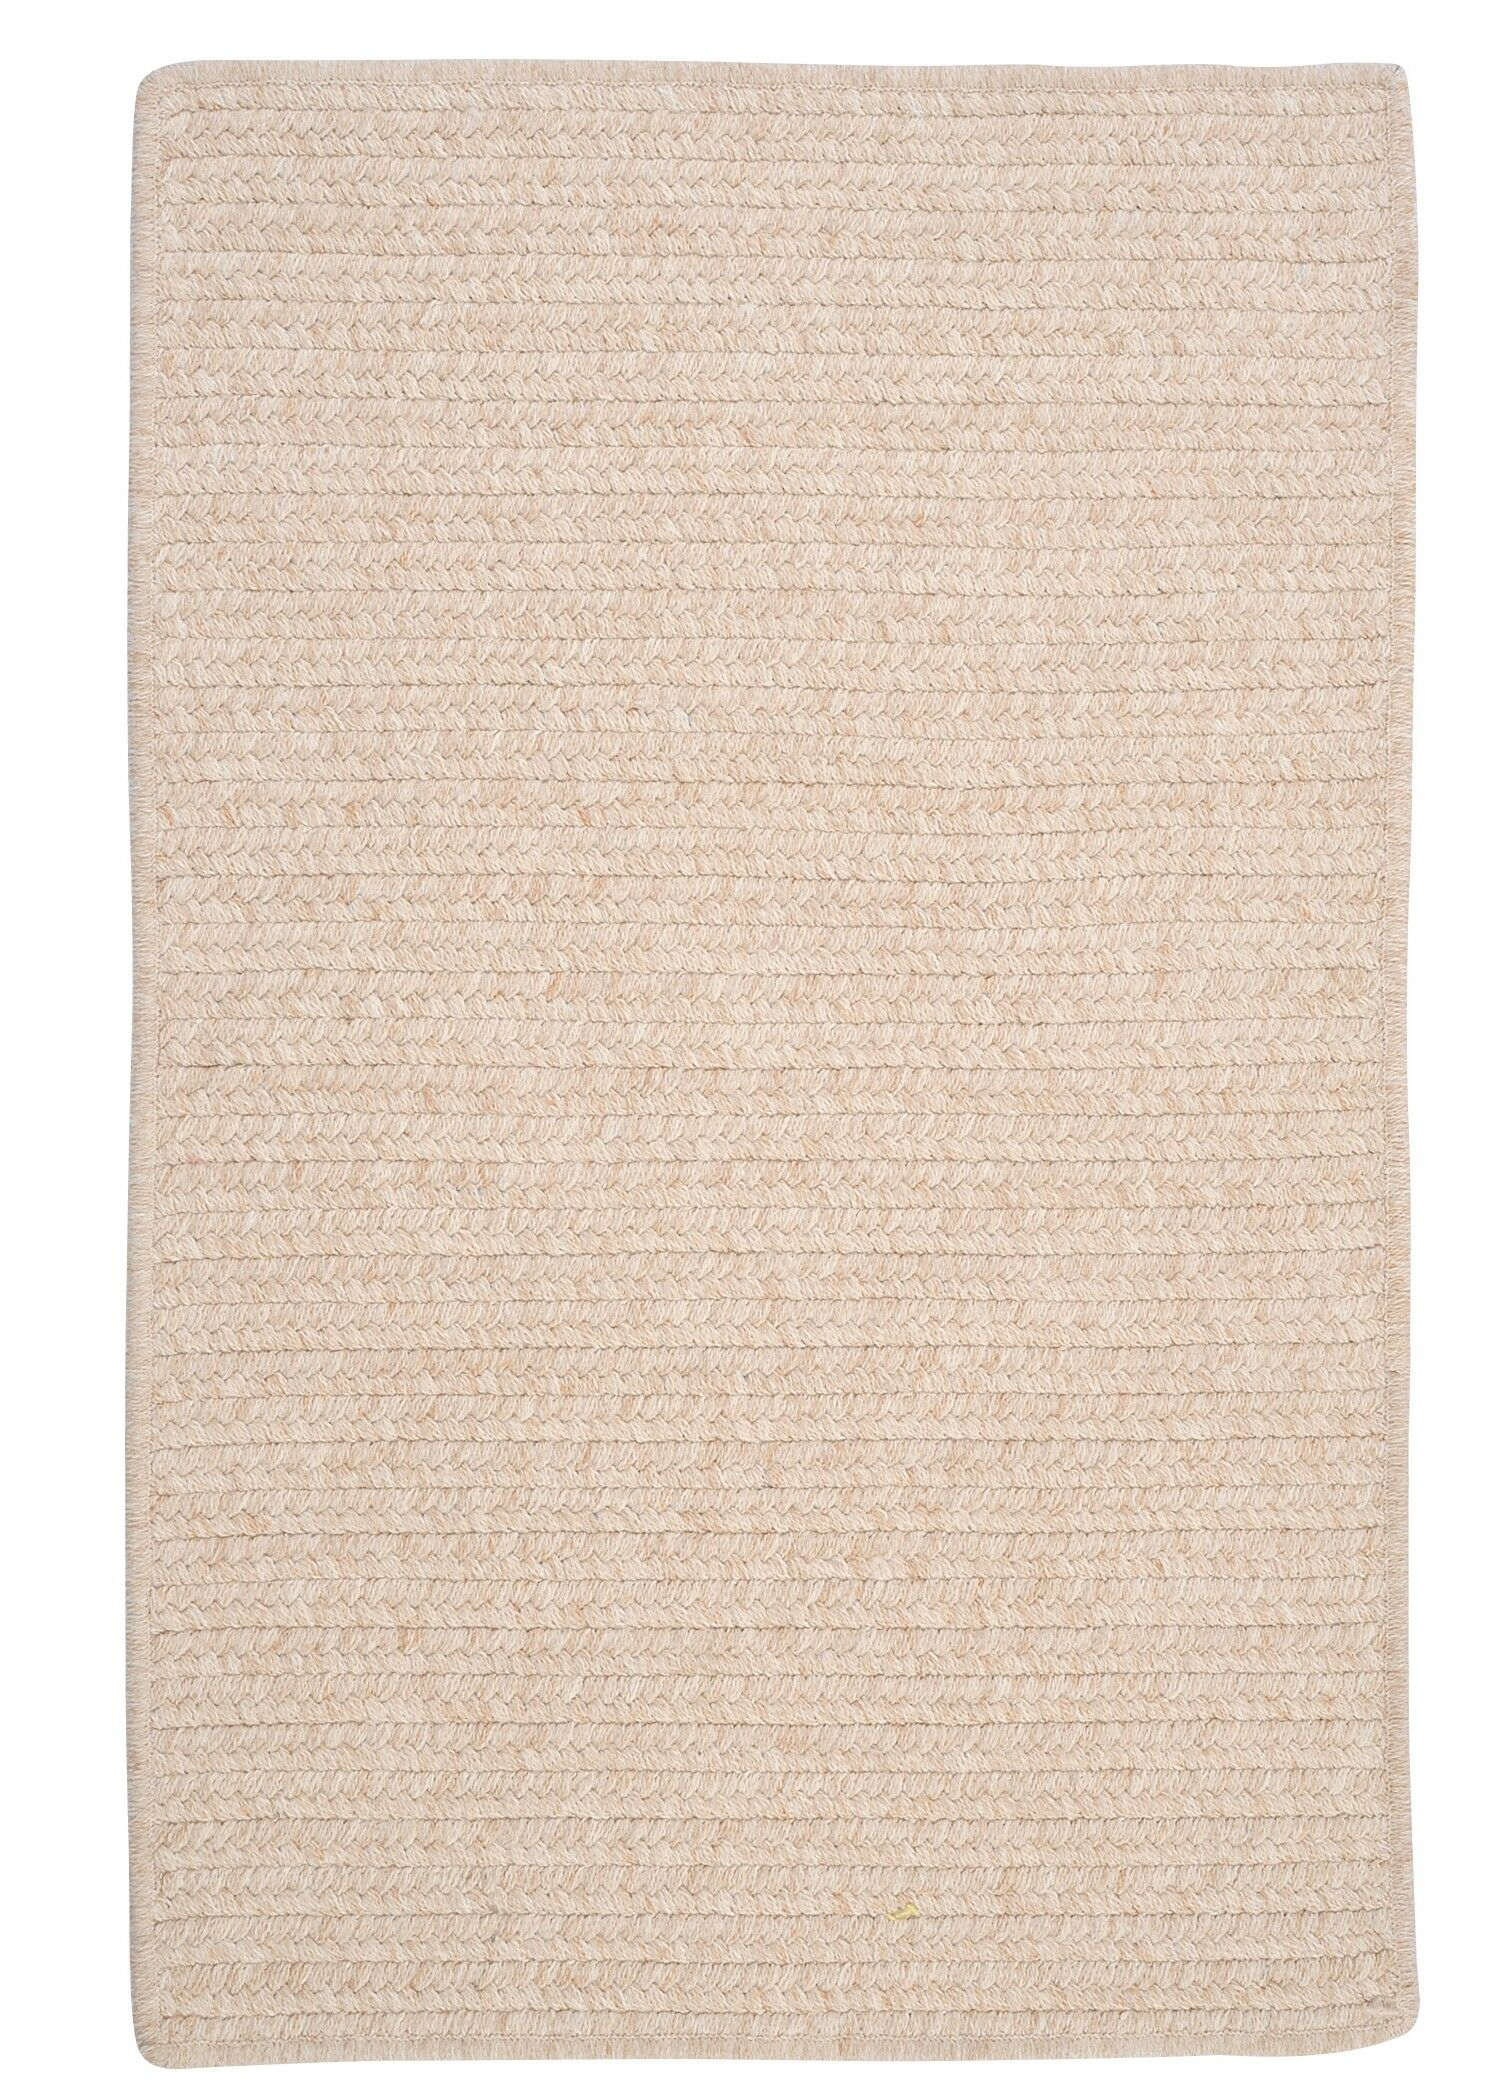 Westminster Natural Area Rug Rug Size: Square 8'